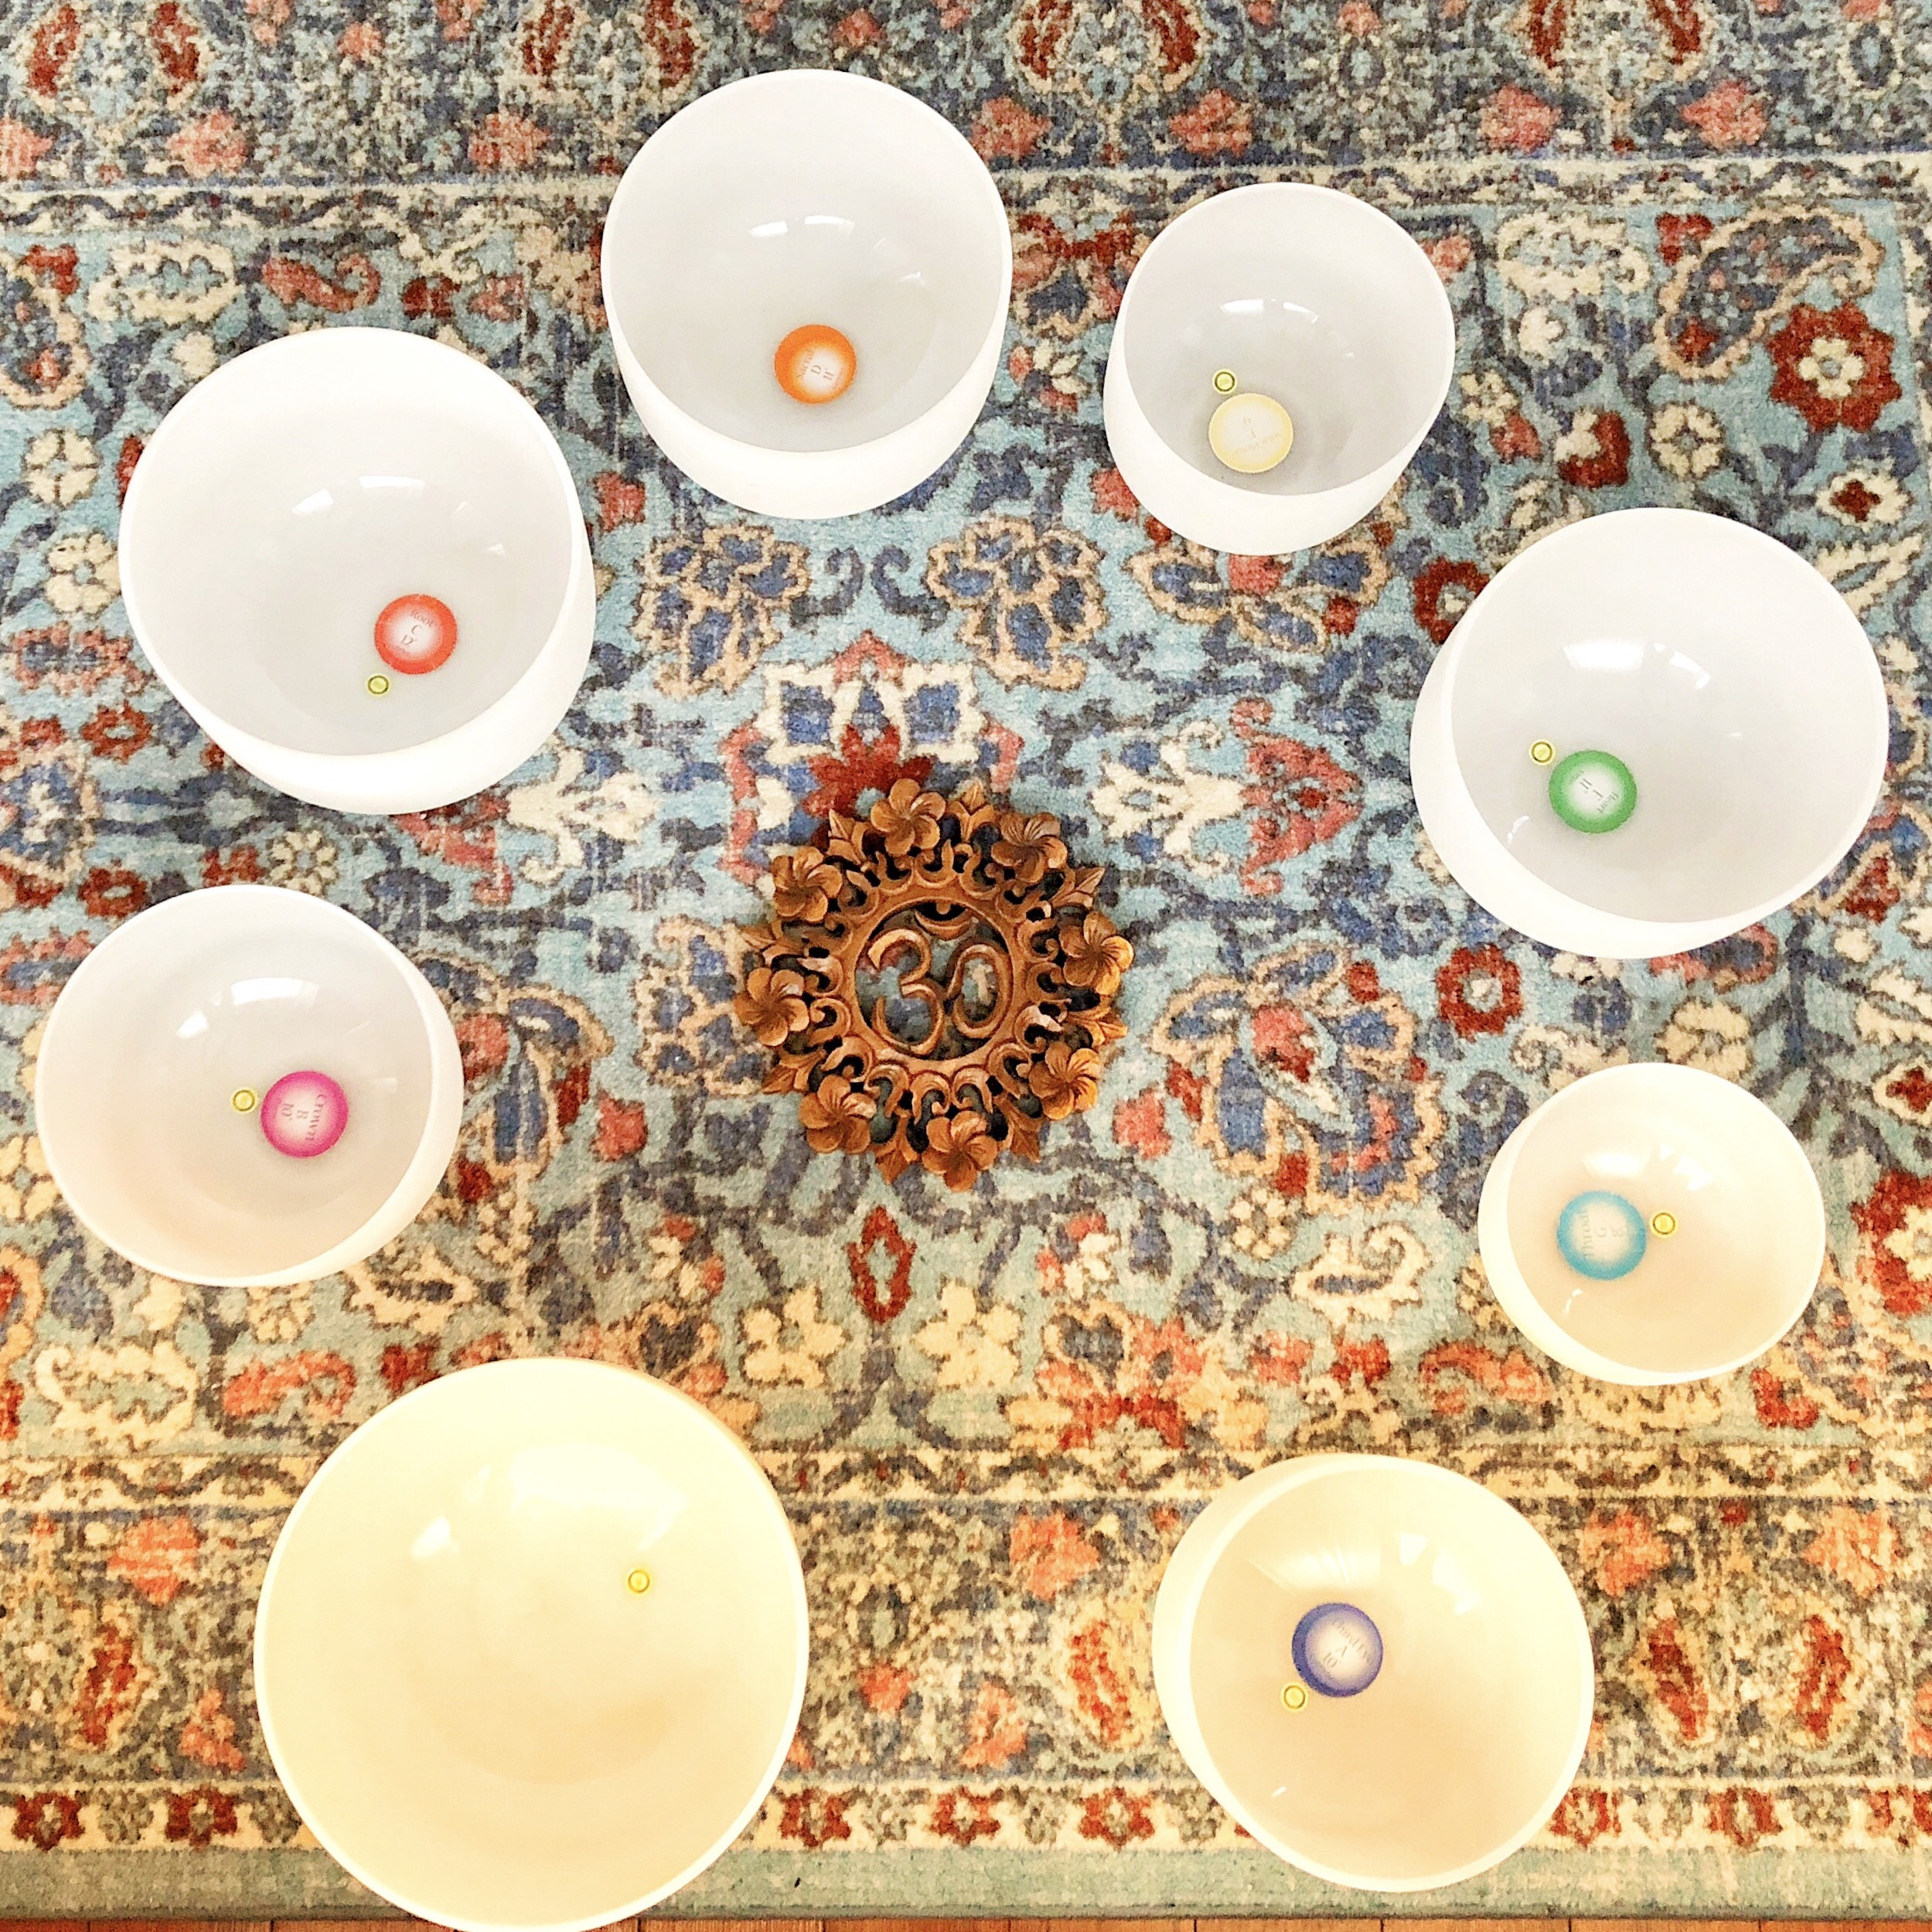 Experience with Atticus   Restorative Sound Bath    September 14 at 7pm